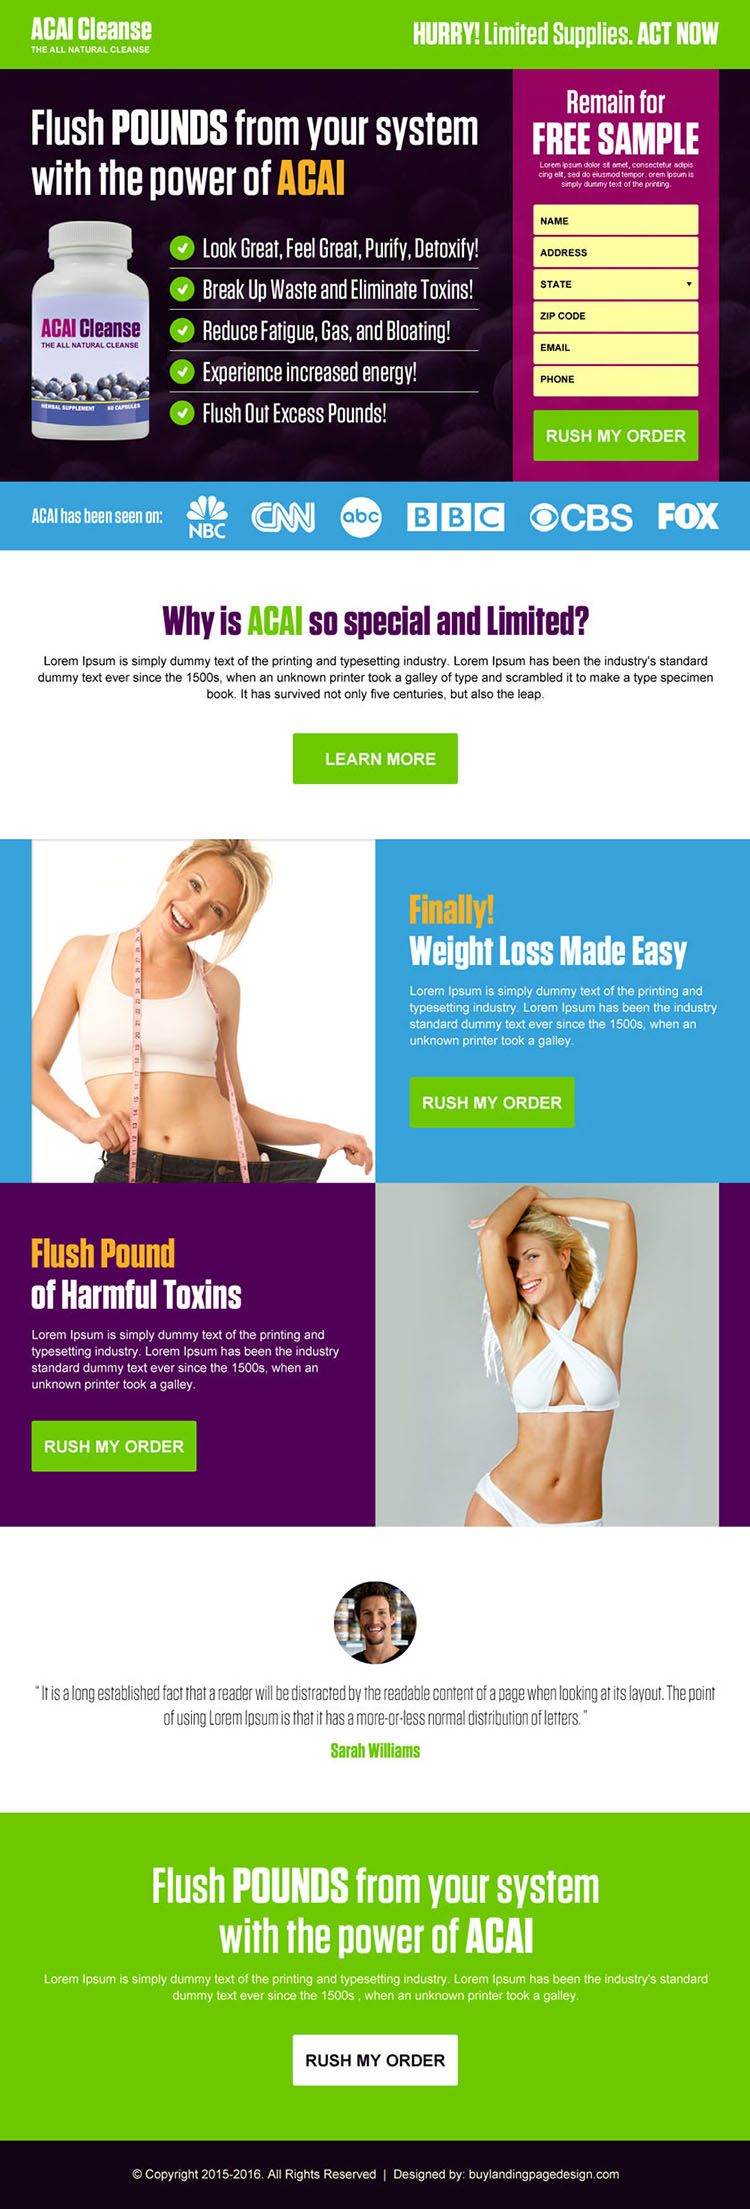 acai cleanse weight loss responsive landing page design